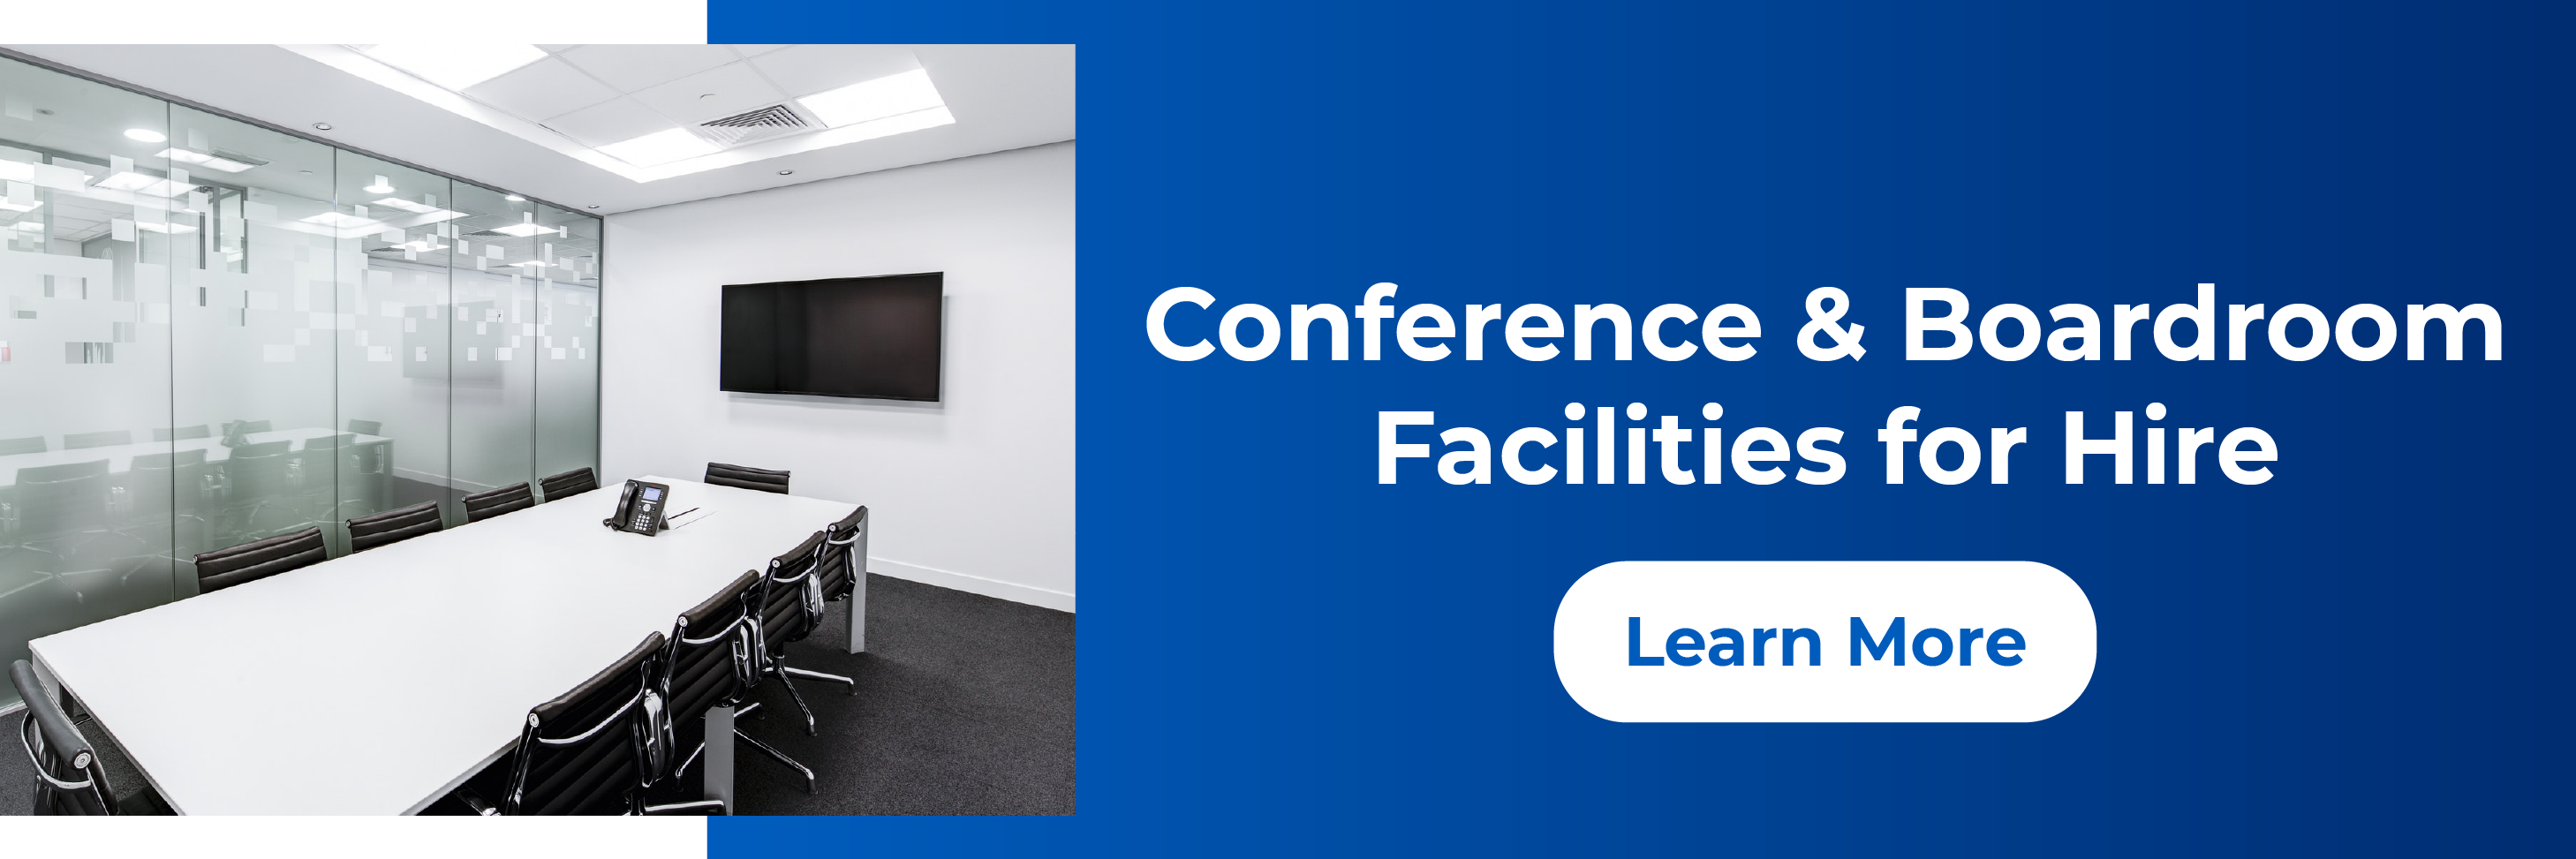 Conference and Boardroom Facilities for Hire